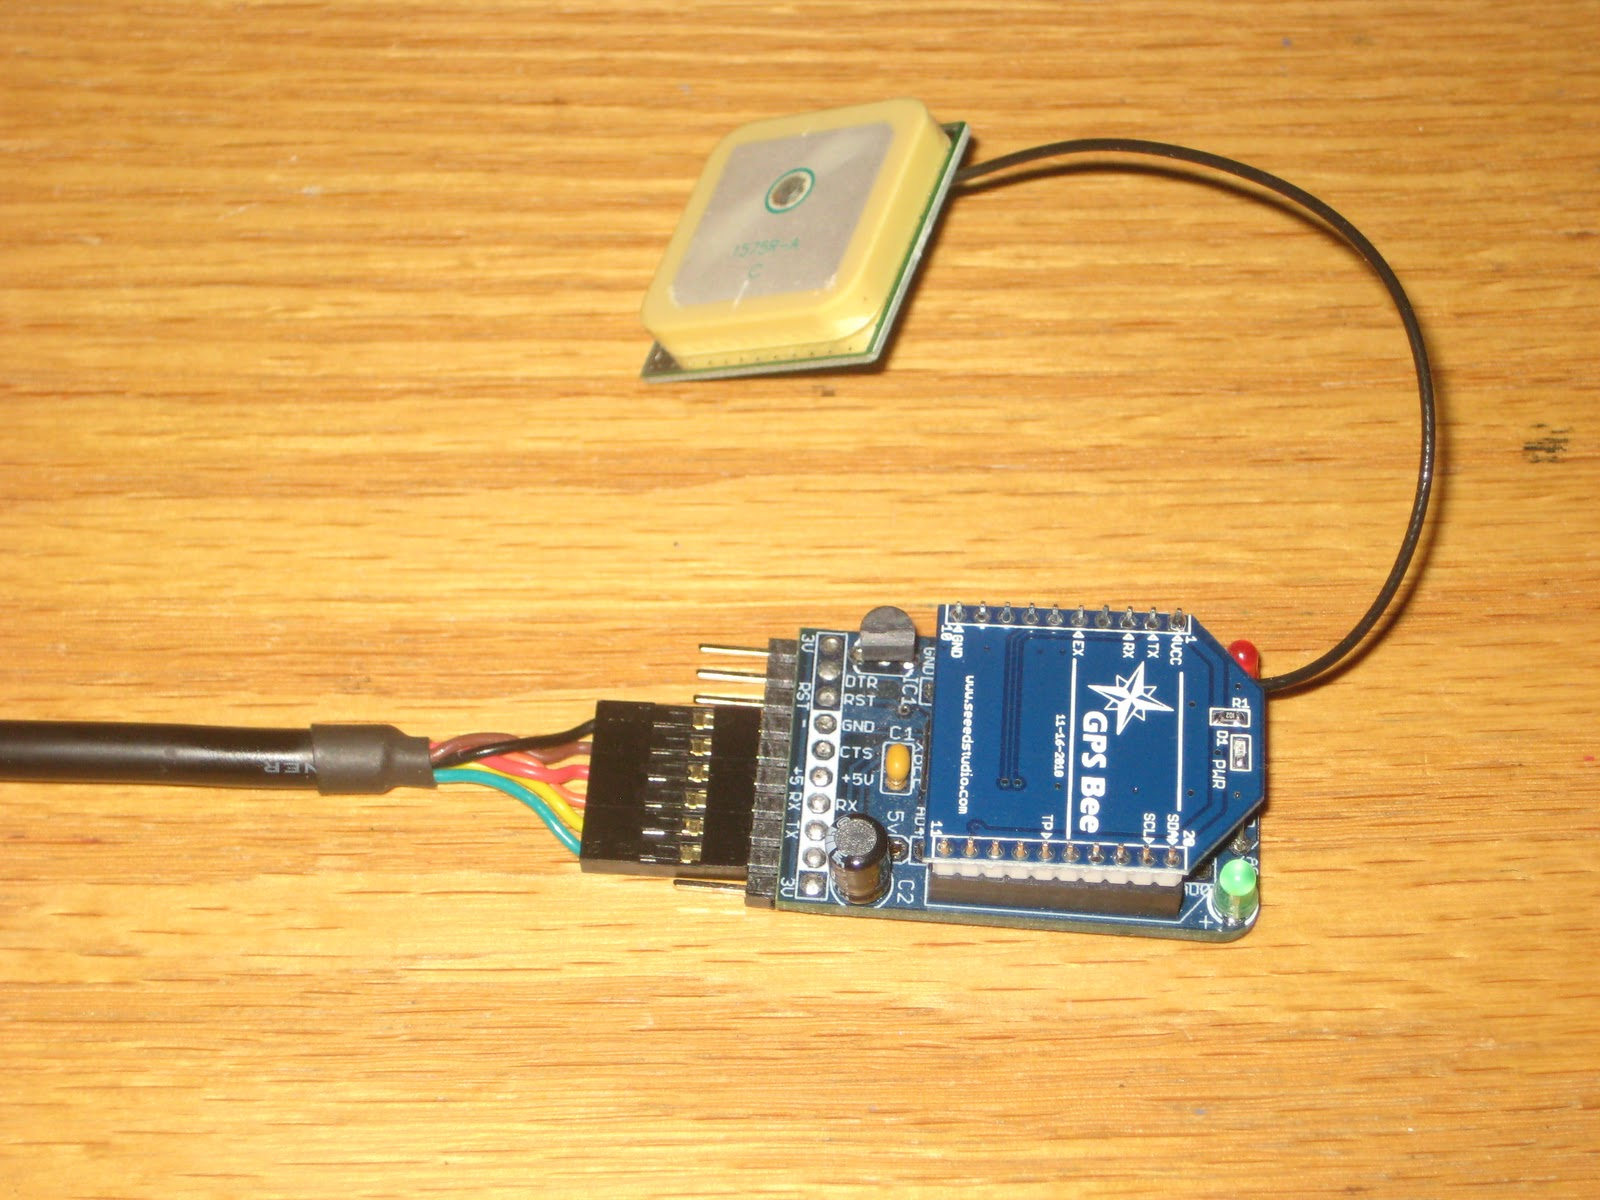 Wise time with Arduino: Wise Clock 4 - time synchronization